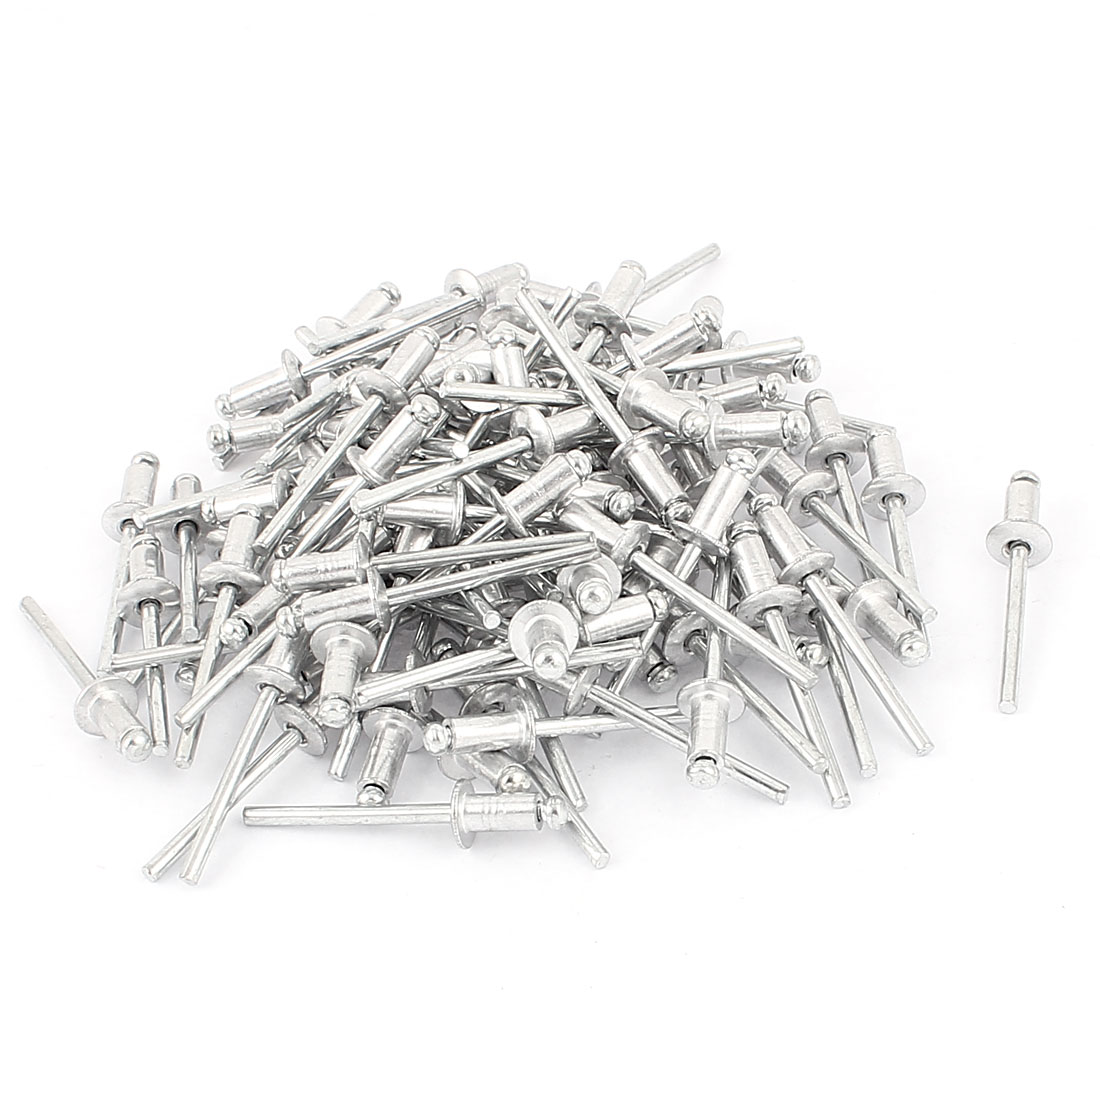 100Pcs 5mm x 9mm Tip 43mm Long Aluminum Open End Dome Head Lock Type Self-plugging Blind Rivets